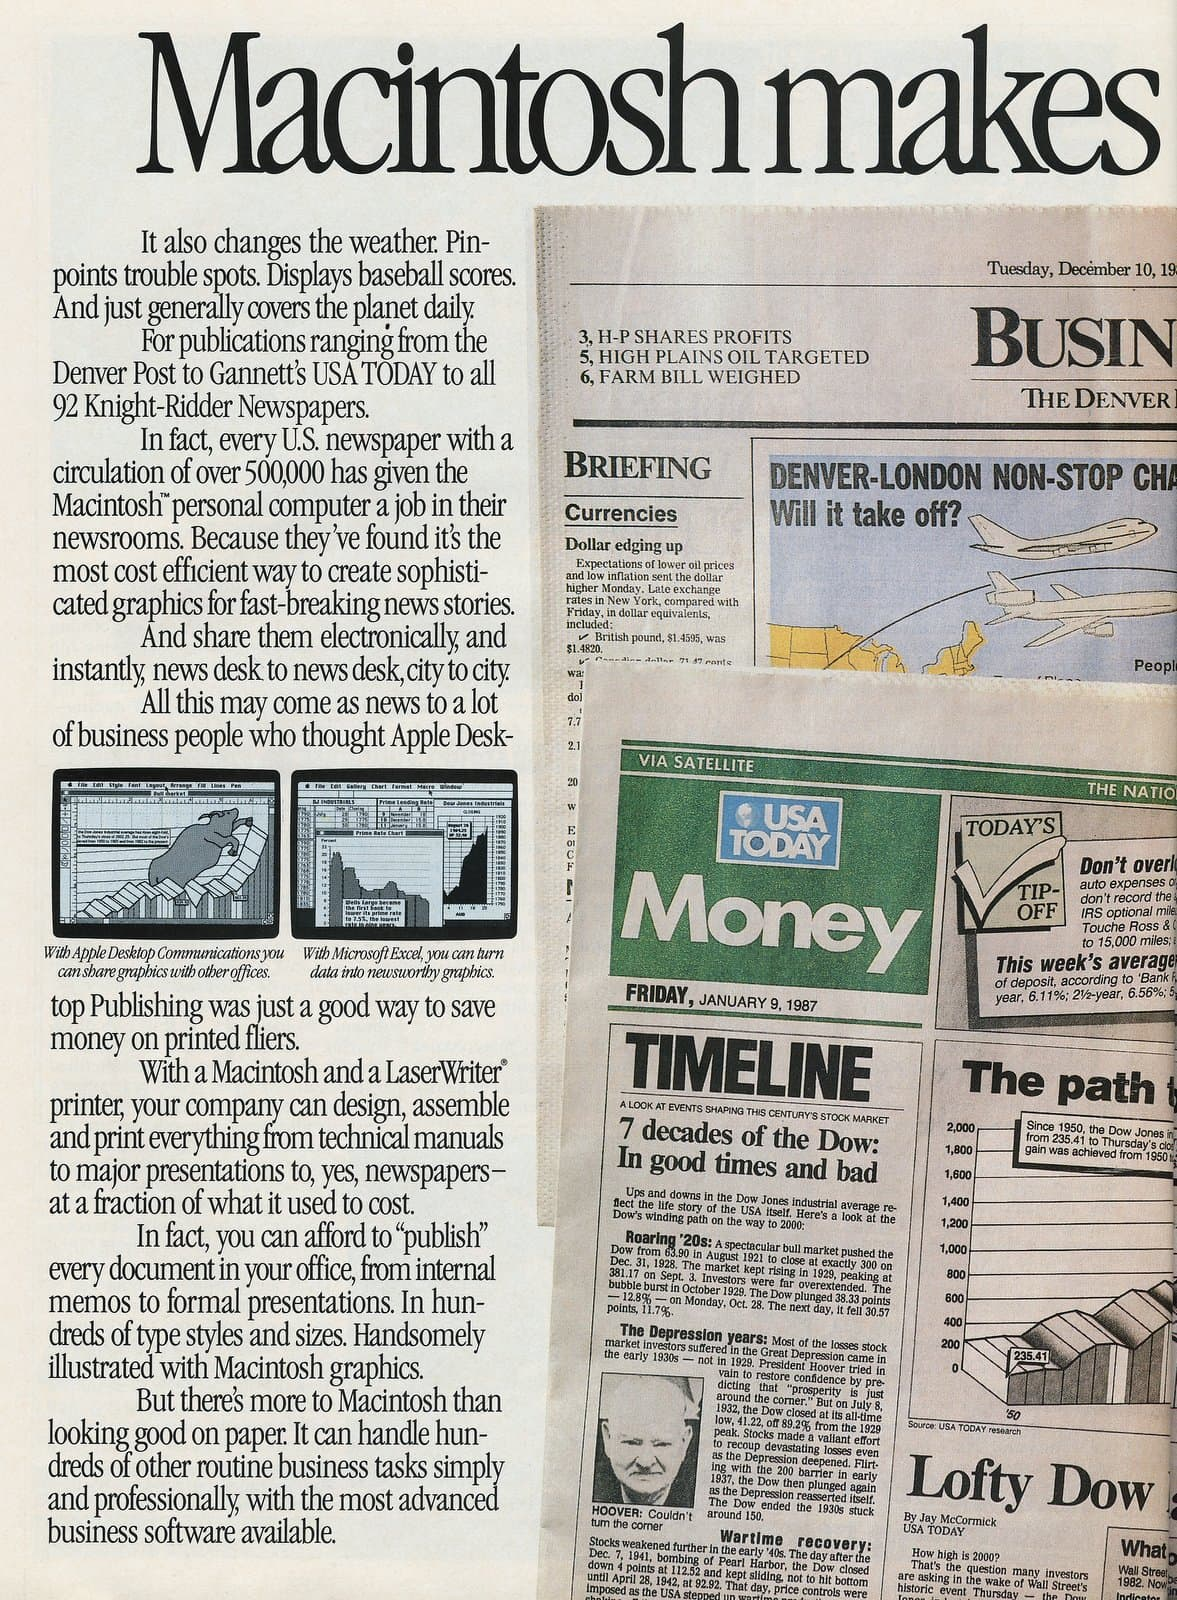 Macintosh makes the financial page - Apple computers 1987 (1)